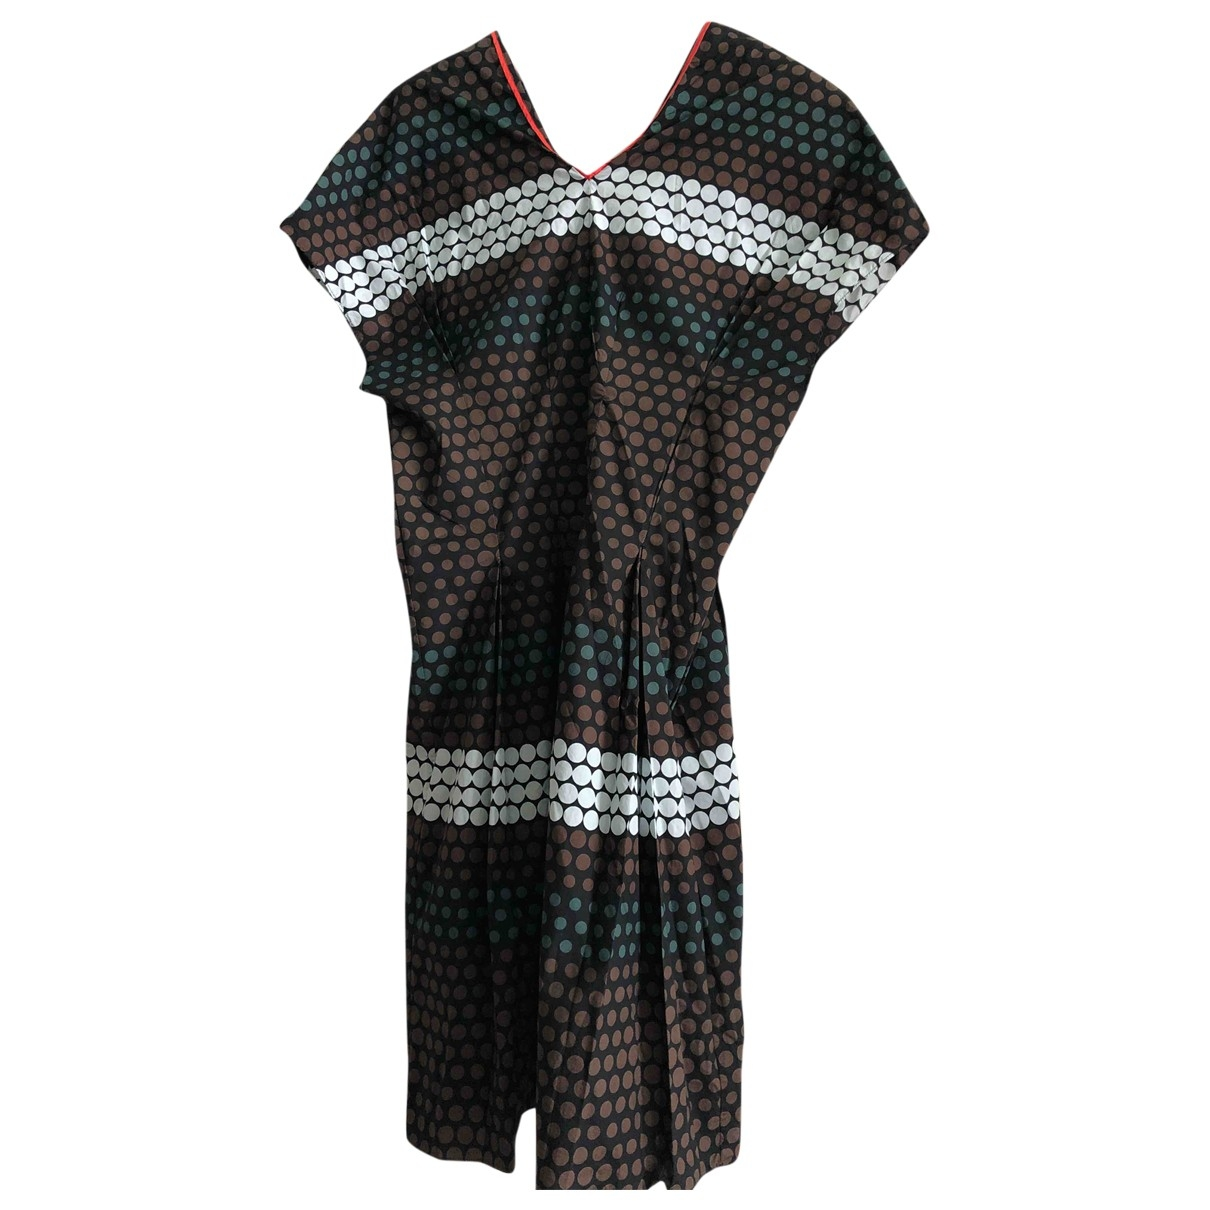 Marni \N Black Cotton dress for Women 38 IT